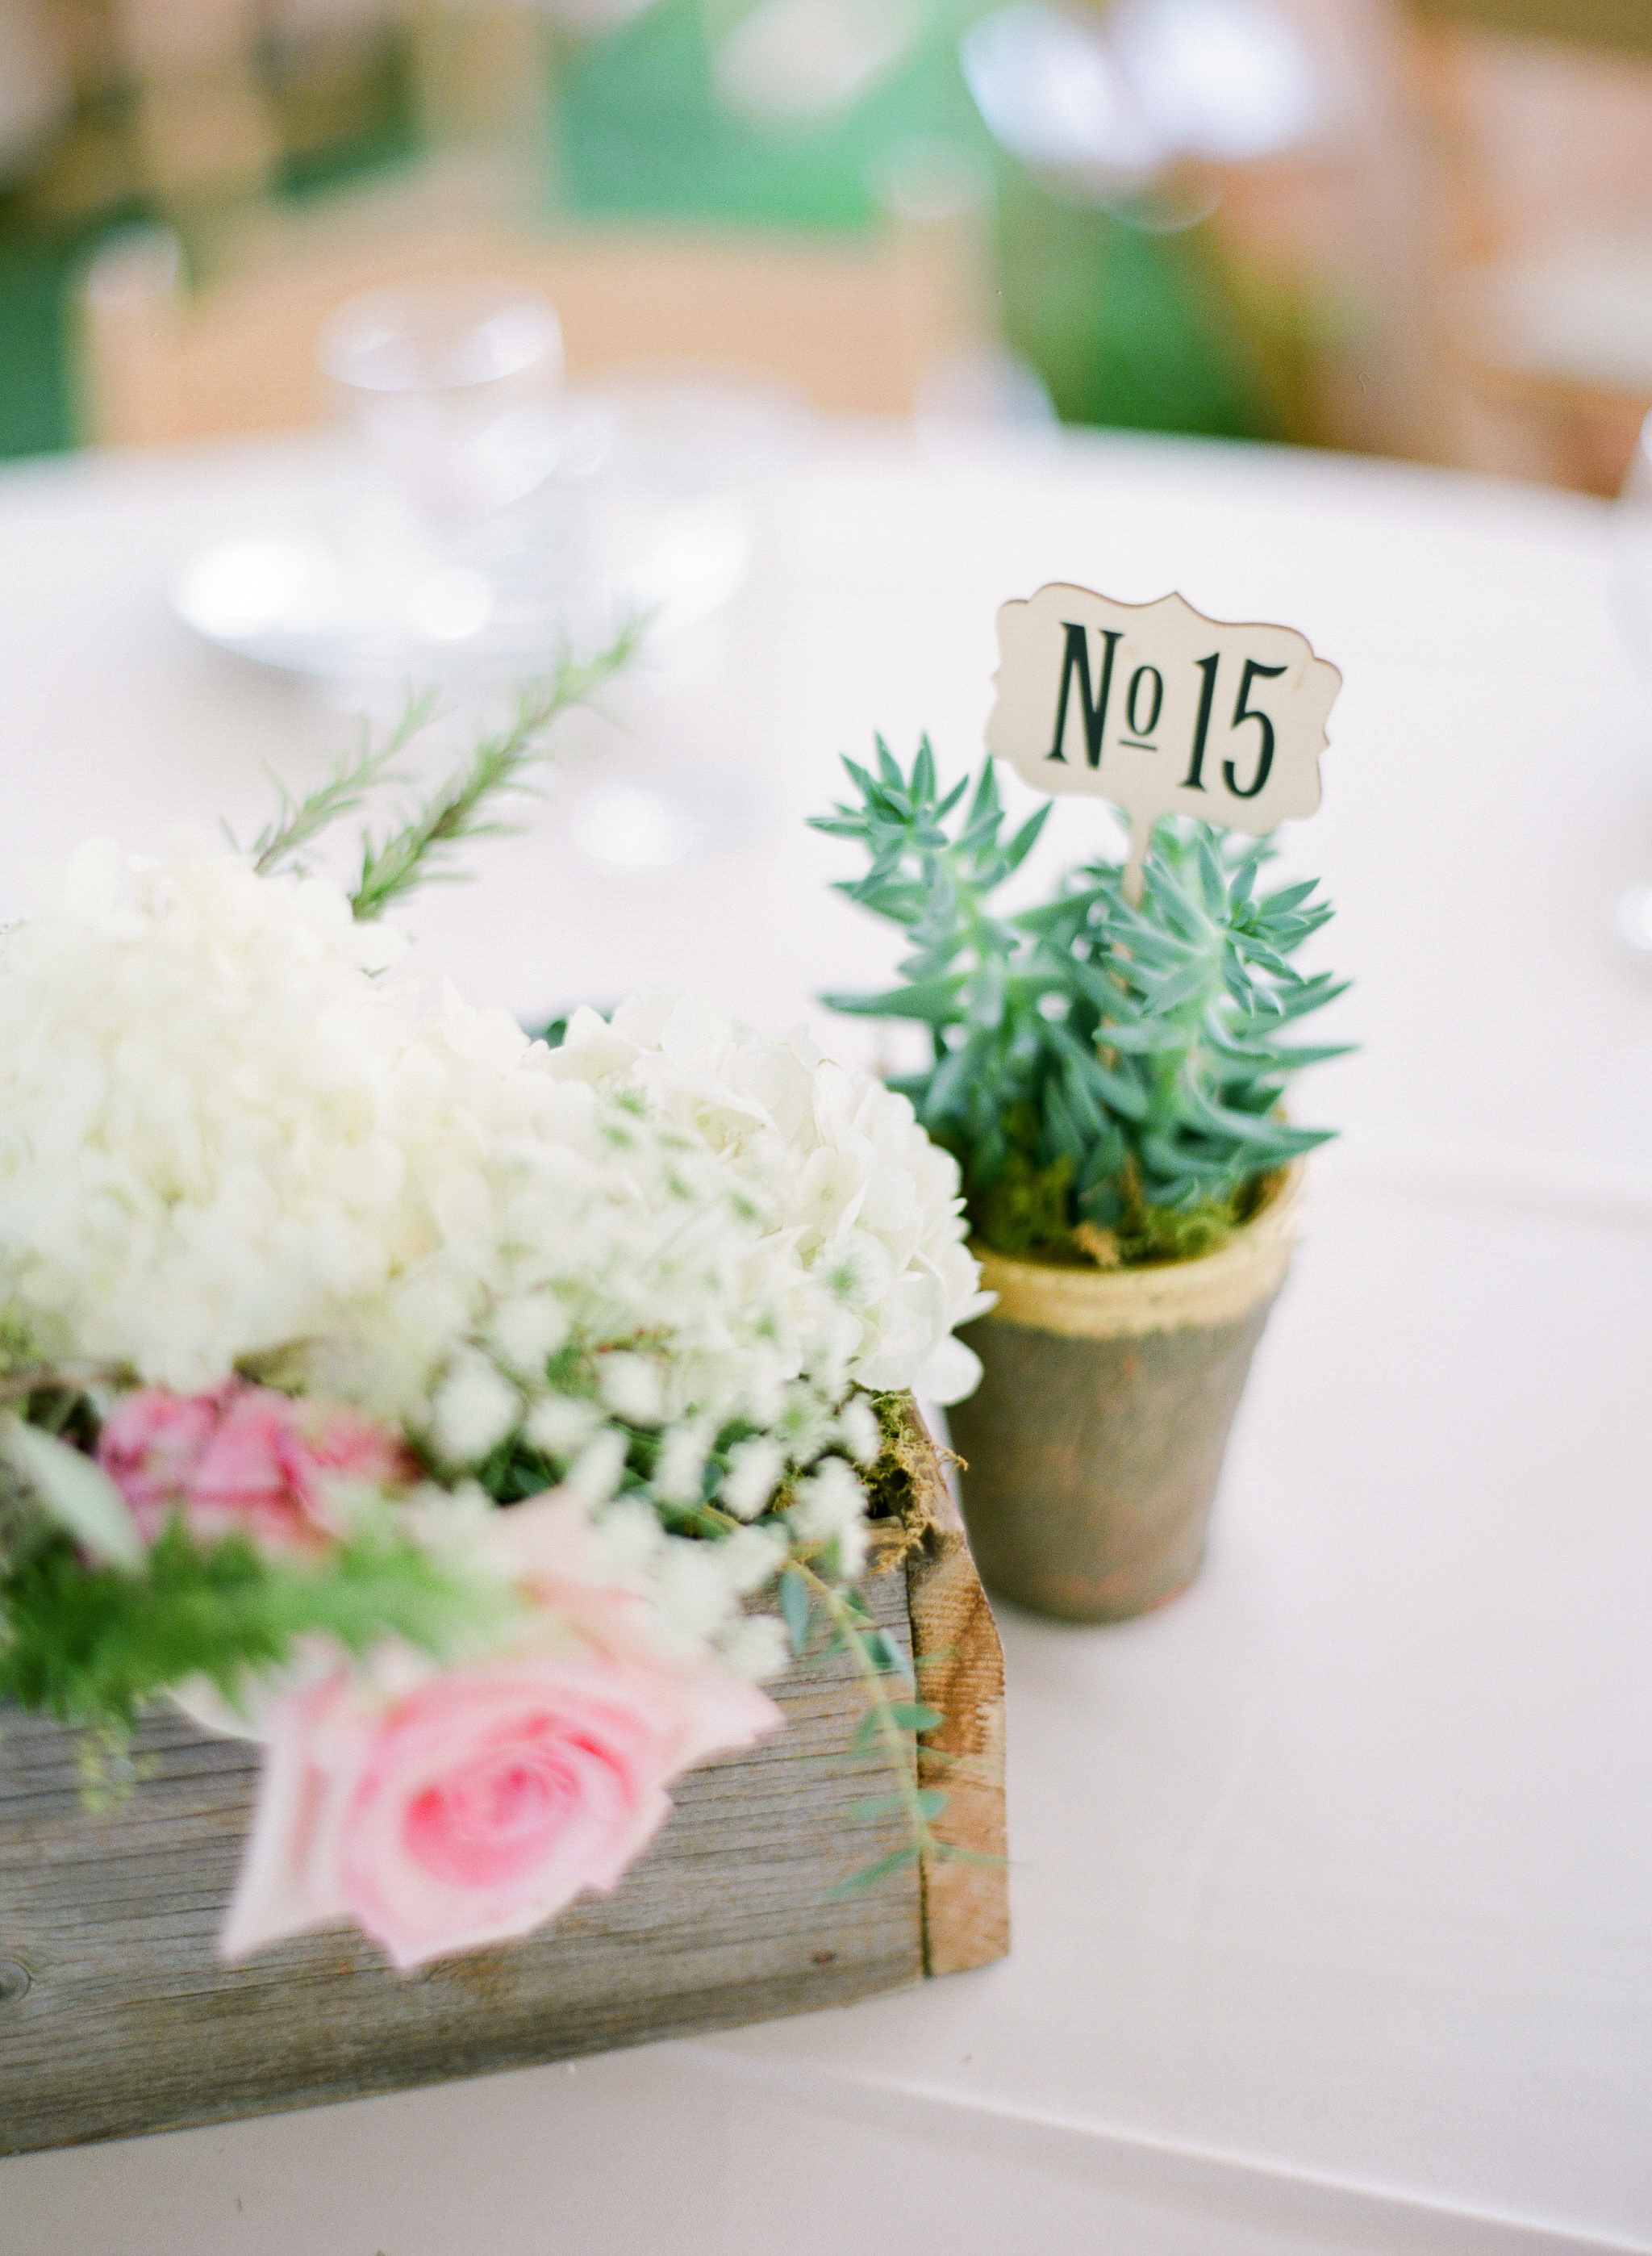 Succulent potted plant table number with vintage sign